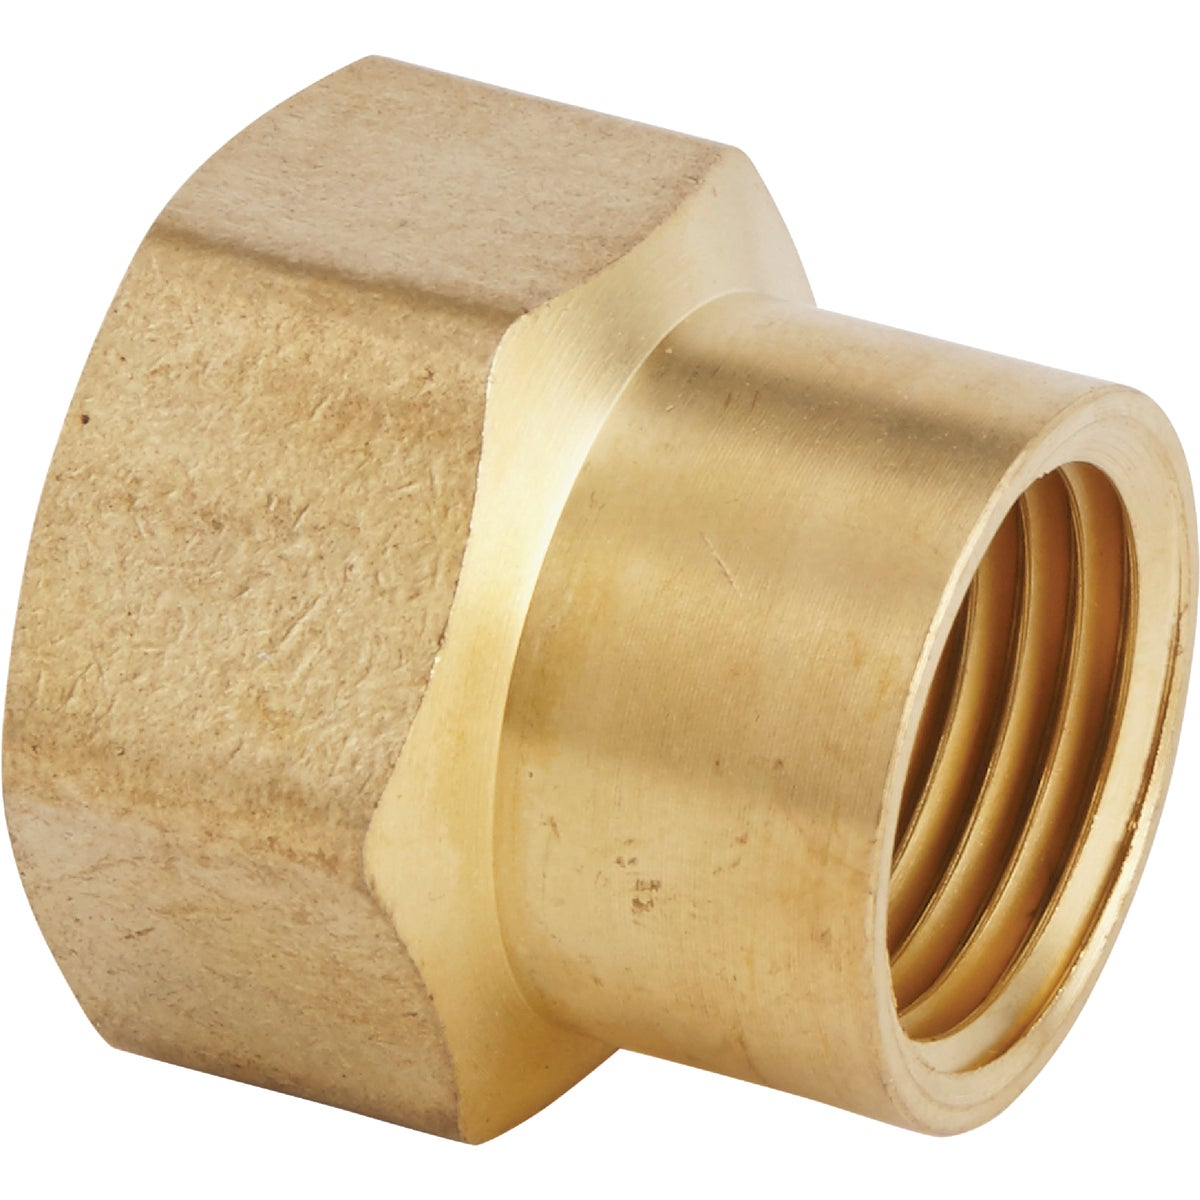 BRASS CONNECTOR - DIB5FP7FH by Bosch G W Gs